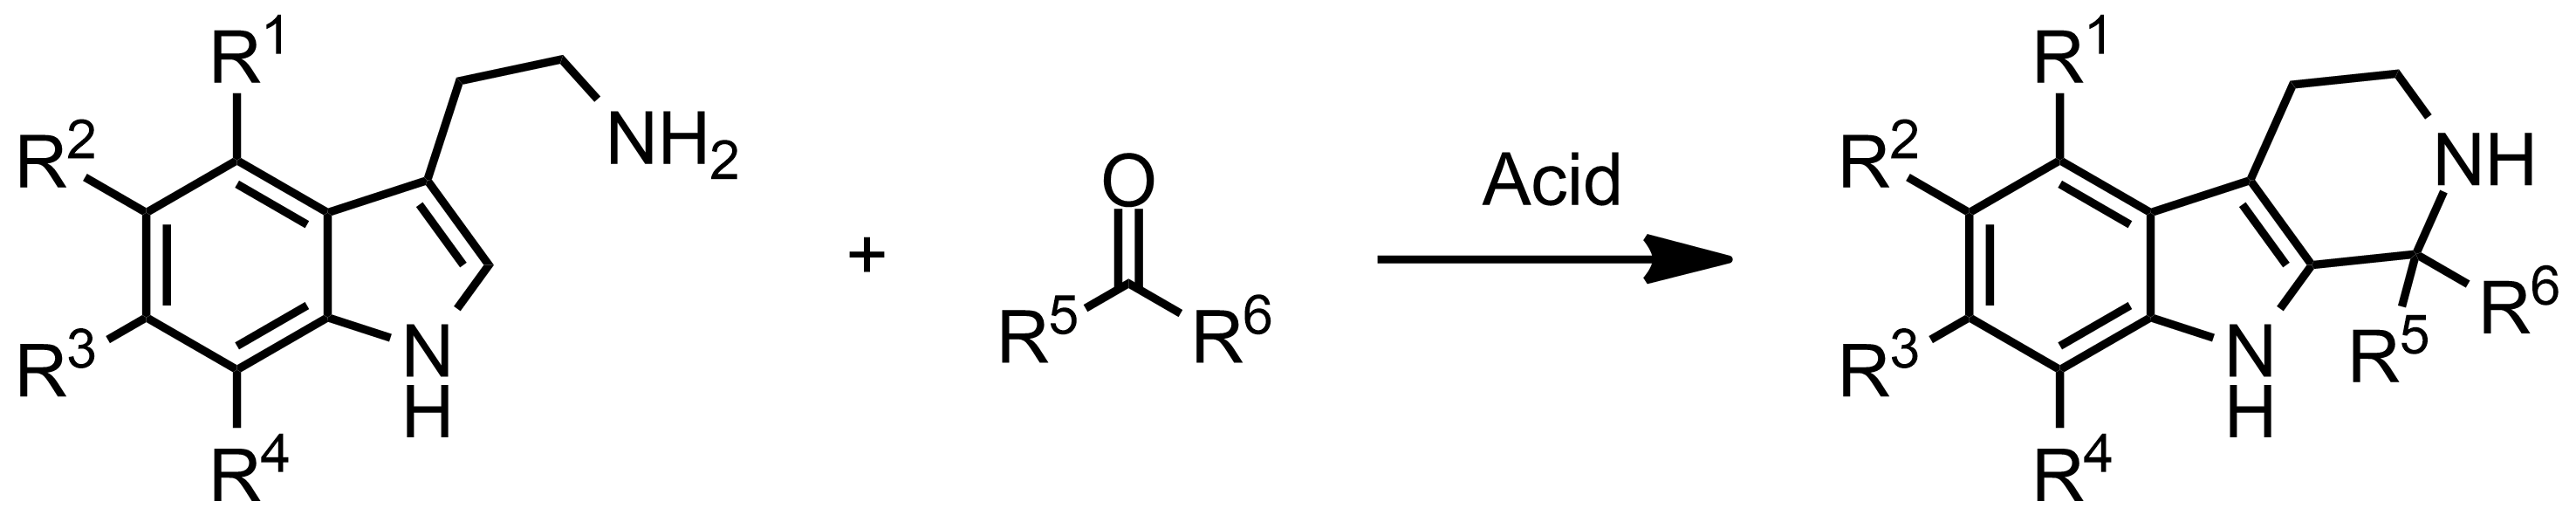 Schematic representation of the Pictet-Spengler Reaction.